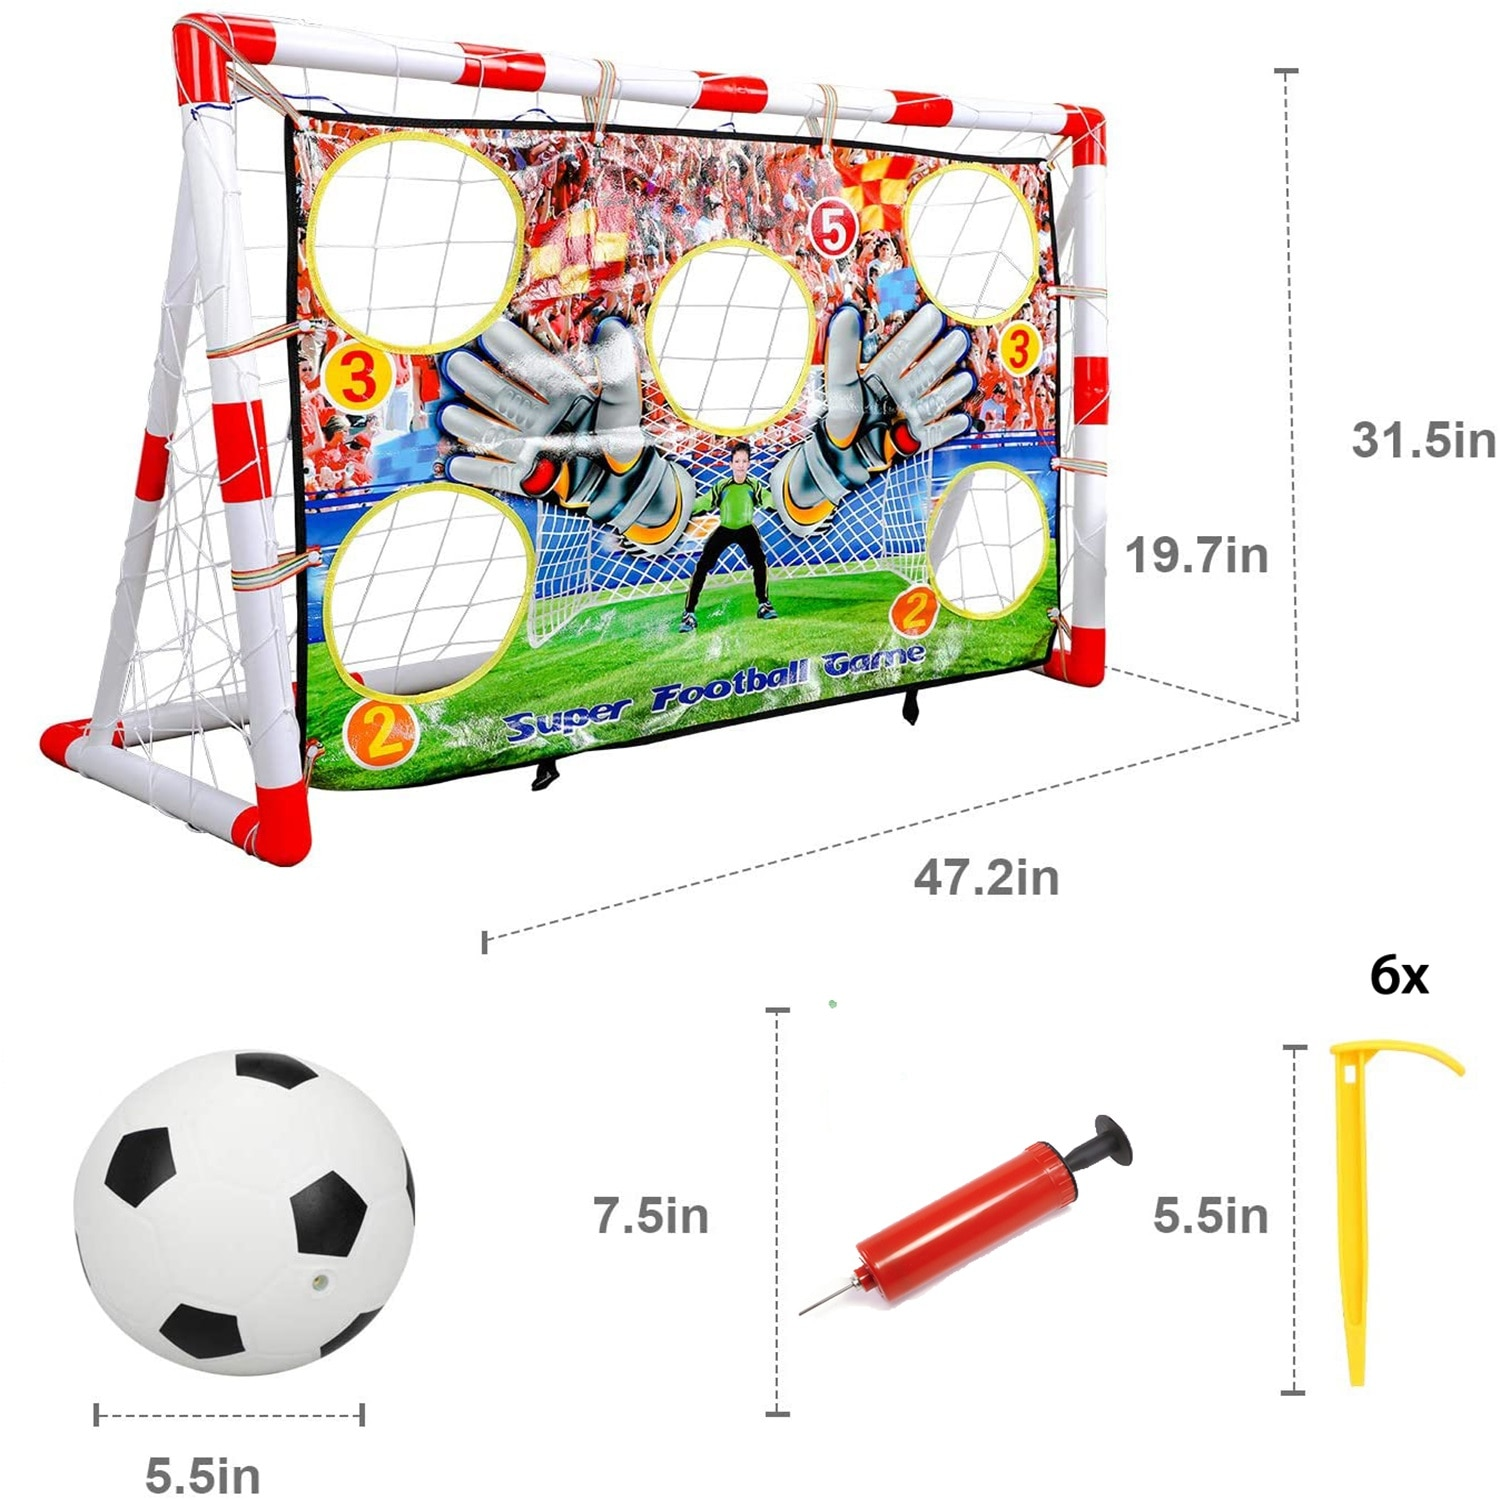 Children's Toy Football Goal Home Indoor Removable Inflatable Football Goal Frame Outdoor Portable Removable Football Net